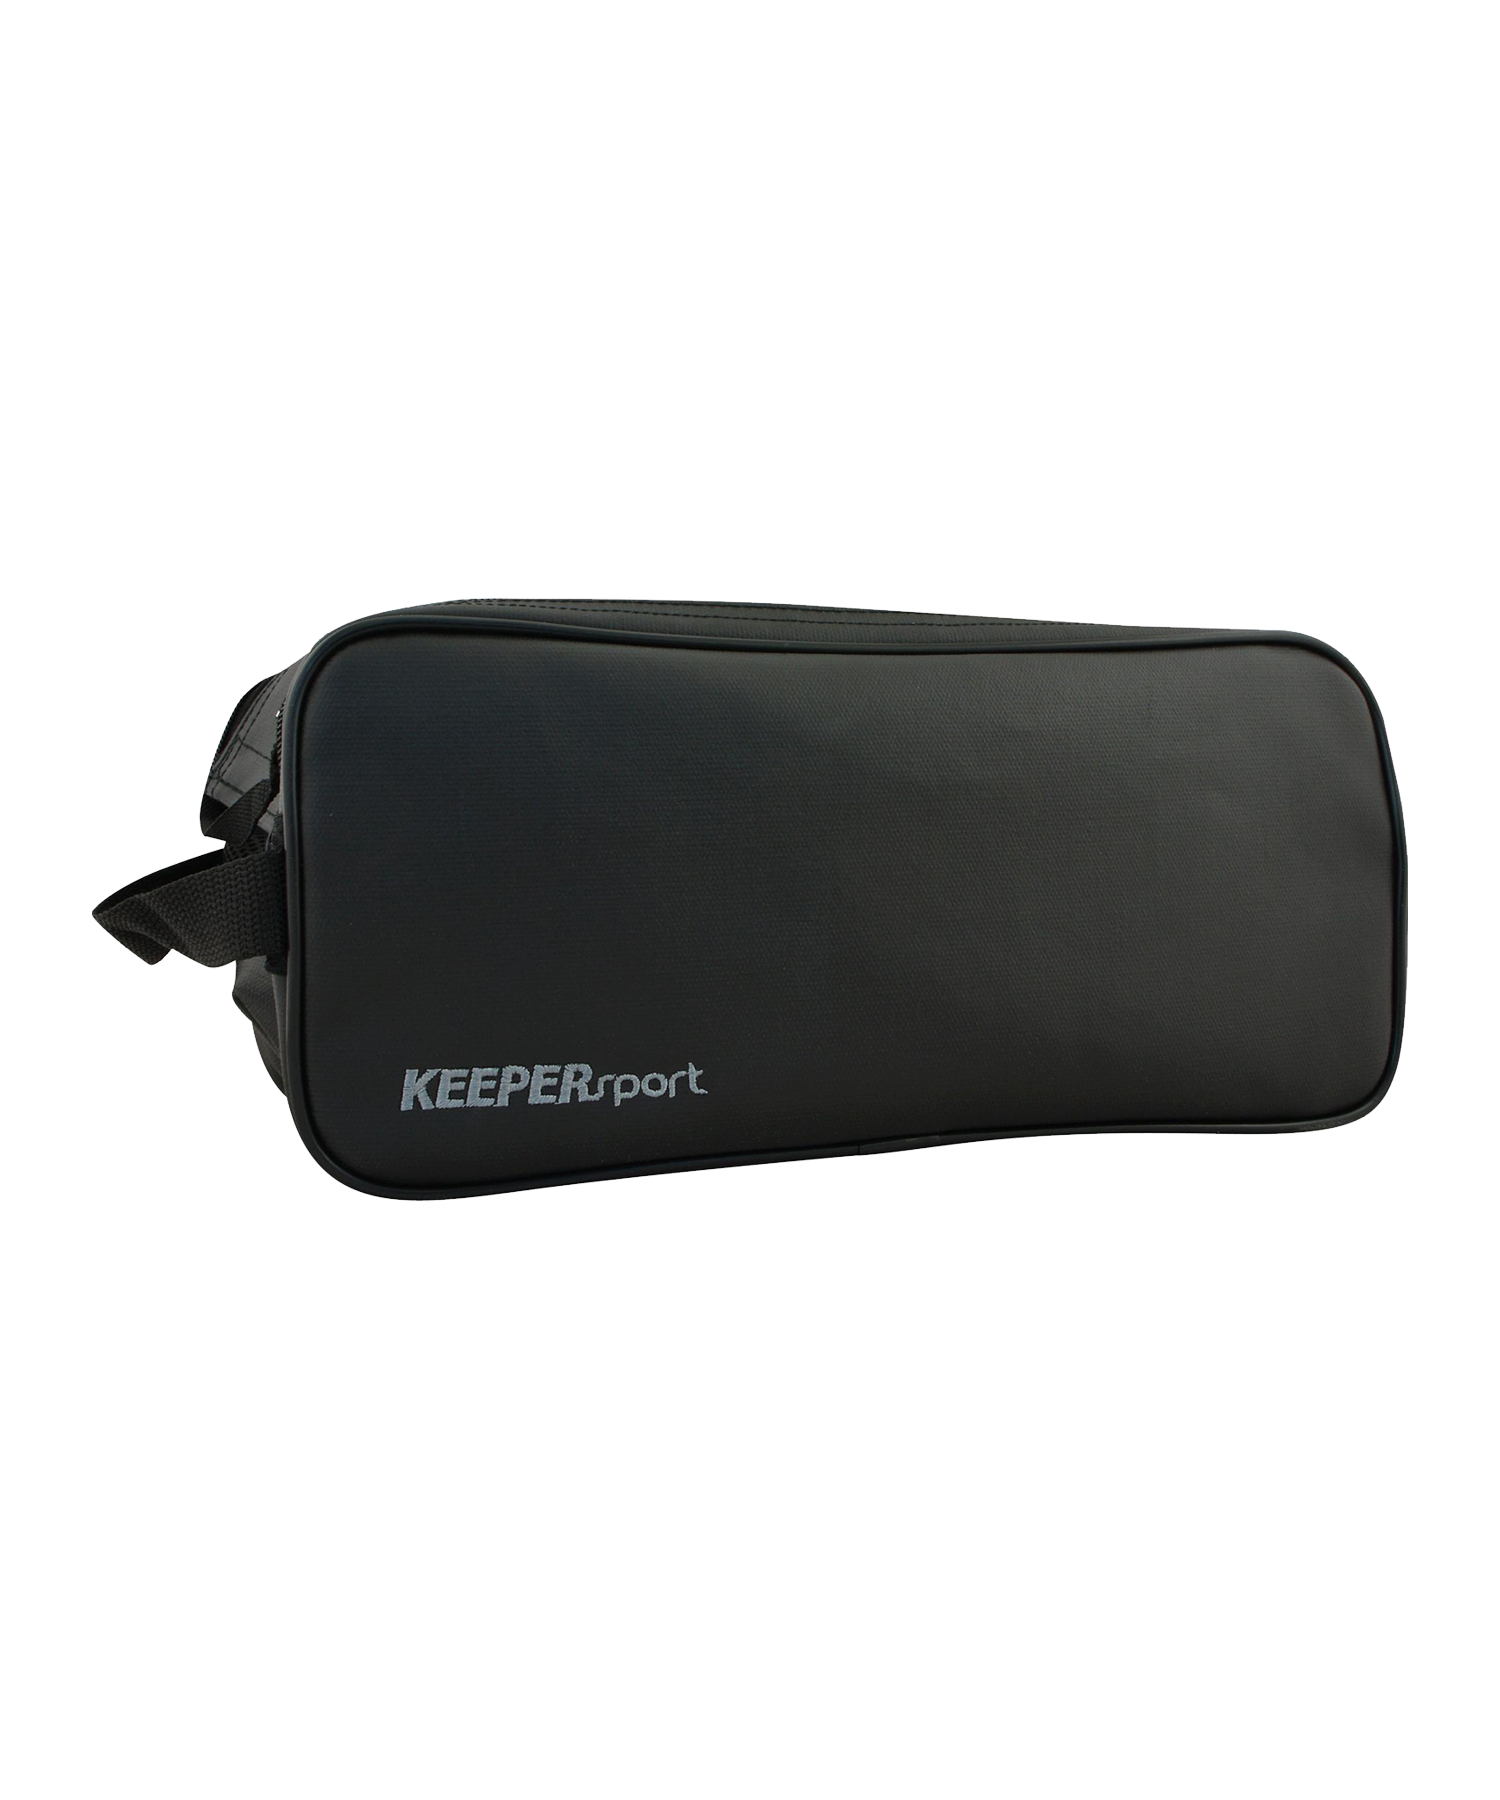 KEEPERsport Glove Bag